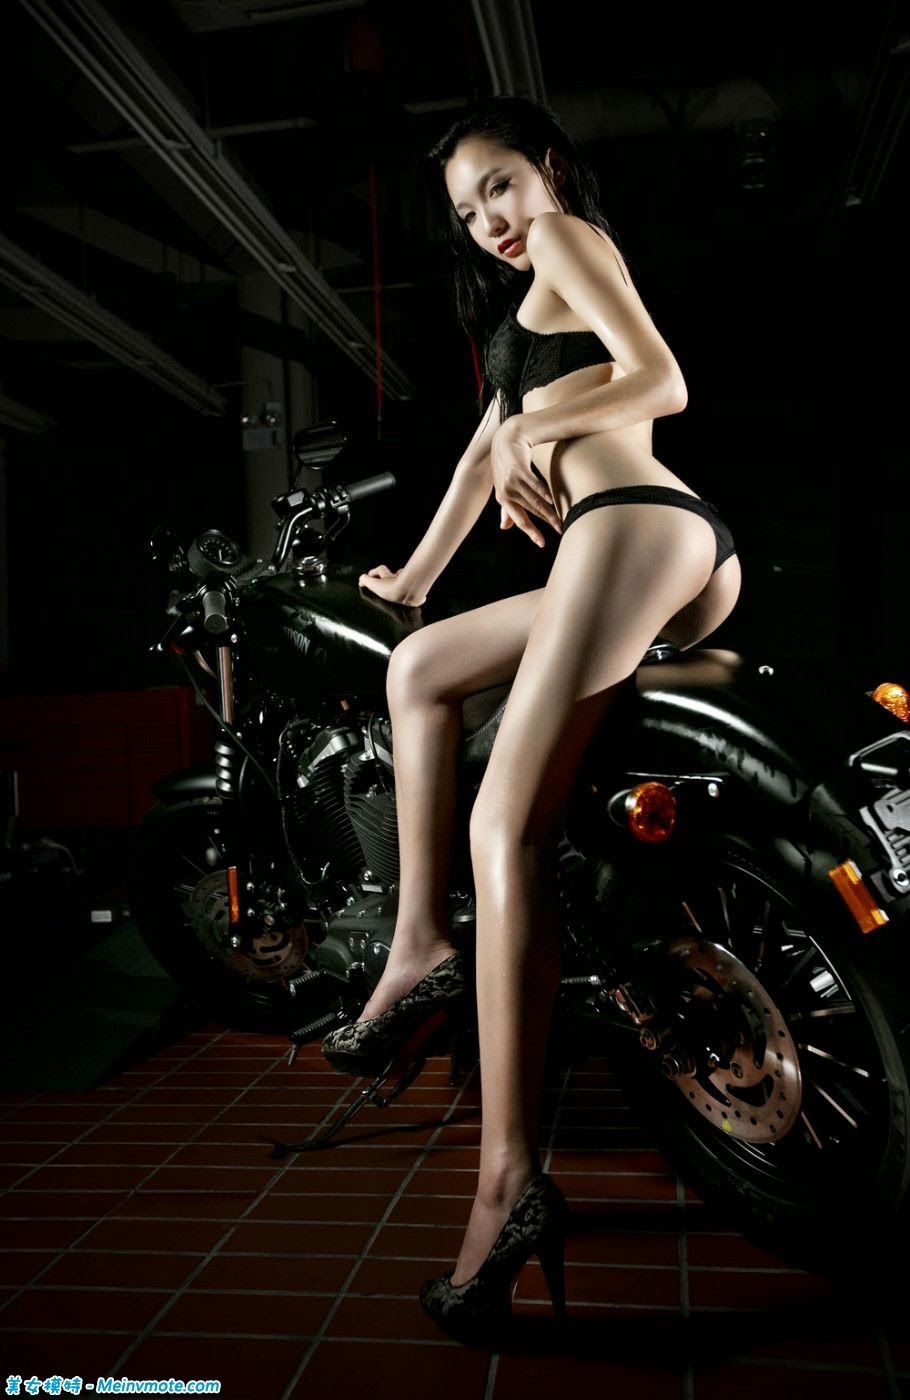 Diao cigarette heavy machine motorcycle girl